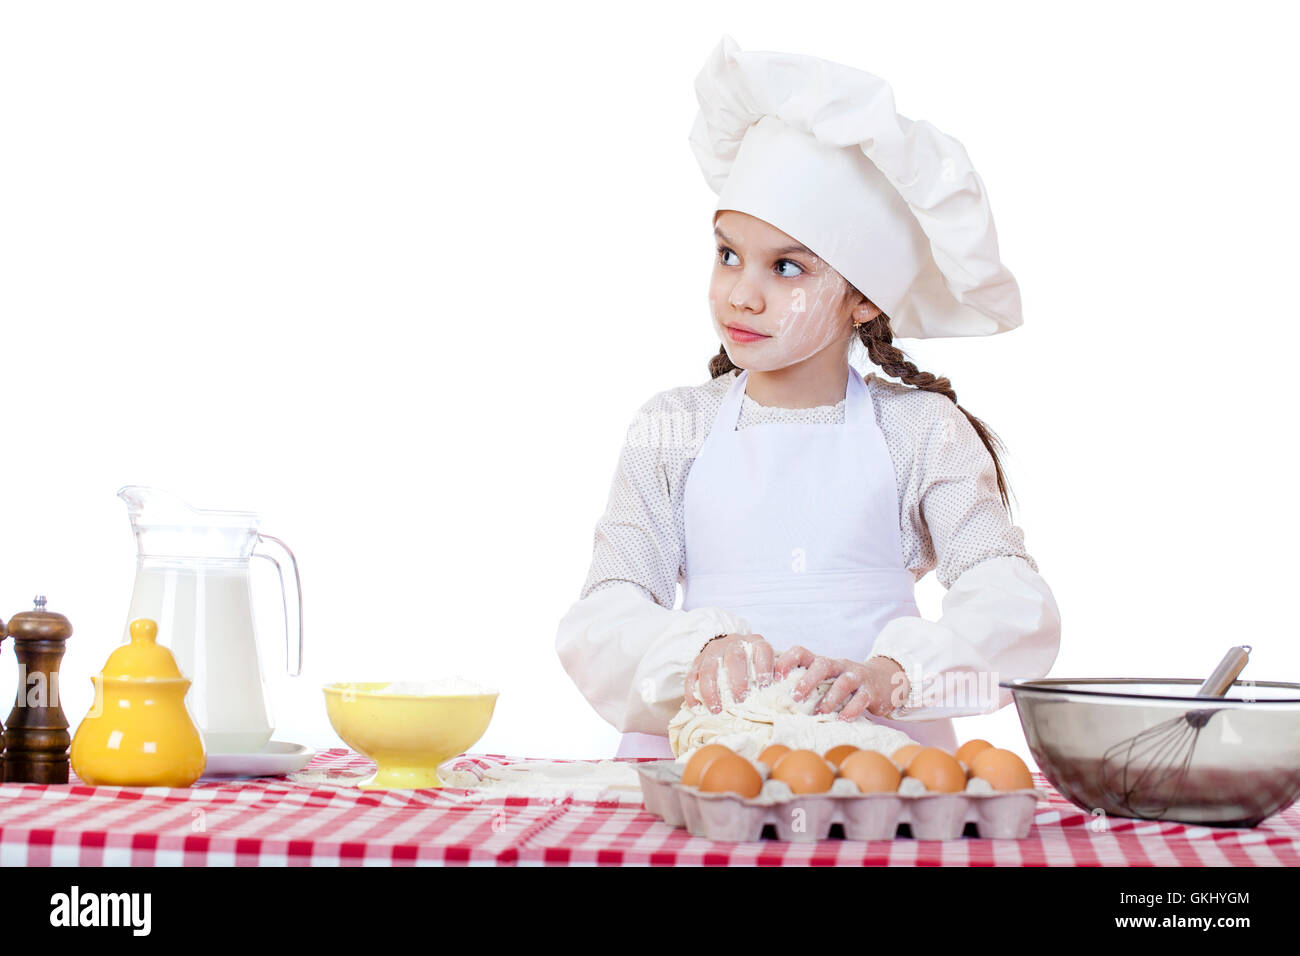 White apron food - Portrait Of A Little Girl In A White Apron And Chefs Hat Knead The Dough In The Kitchen Isolated On A White Background